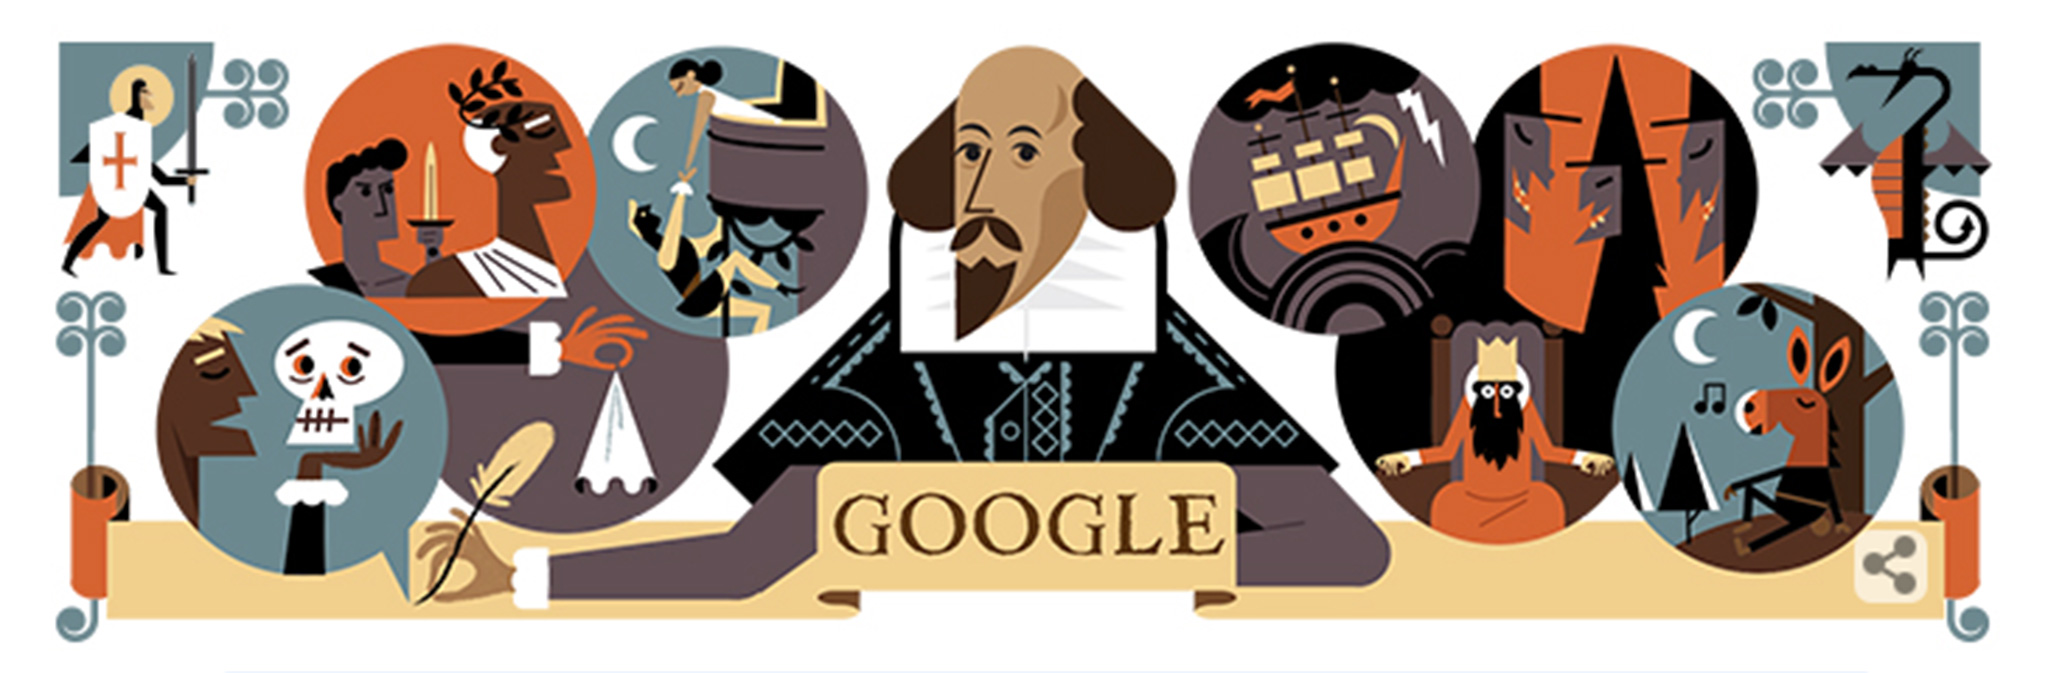 Dagger clipart shakespeare Celebrates Google name celebrates Doodle